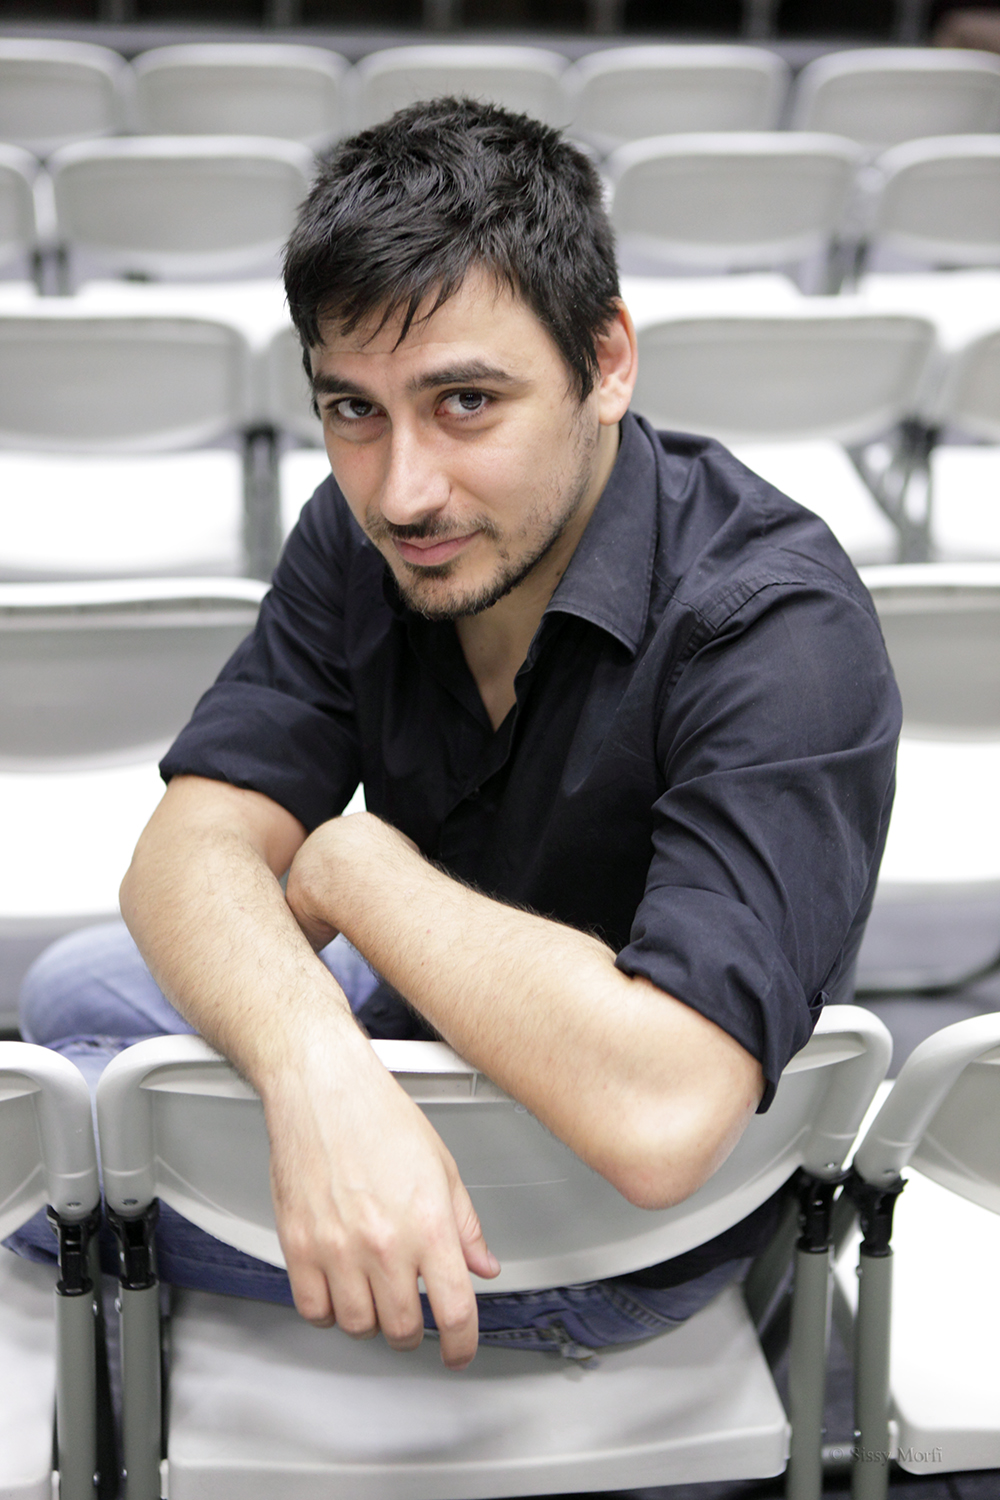 Vasilis Mavrogeorgiou / director-theatre writer-actor / Metropolis No 1008